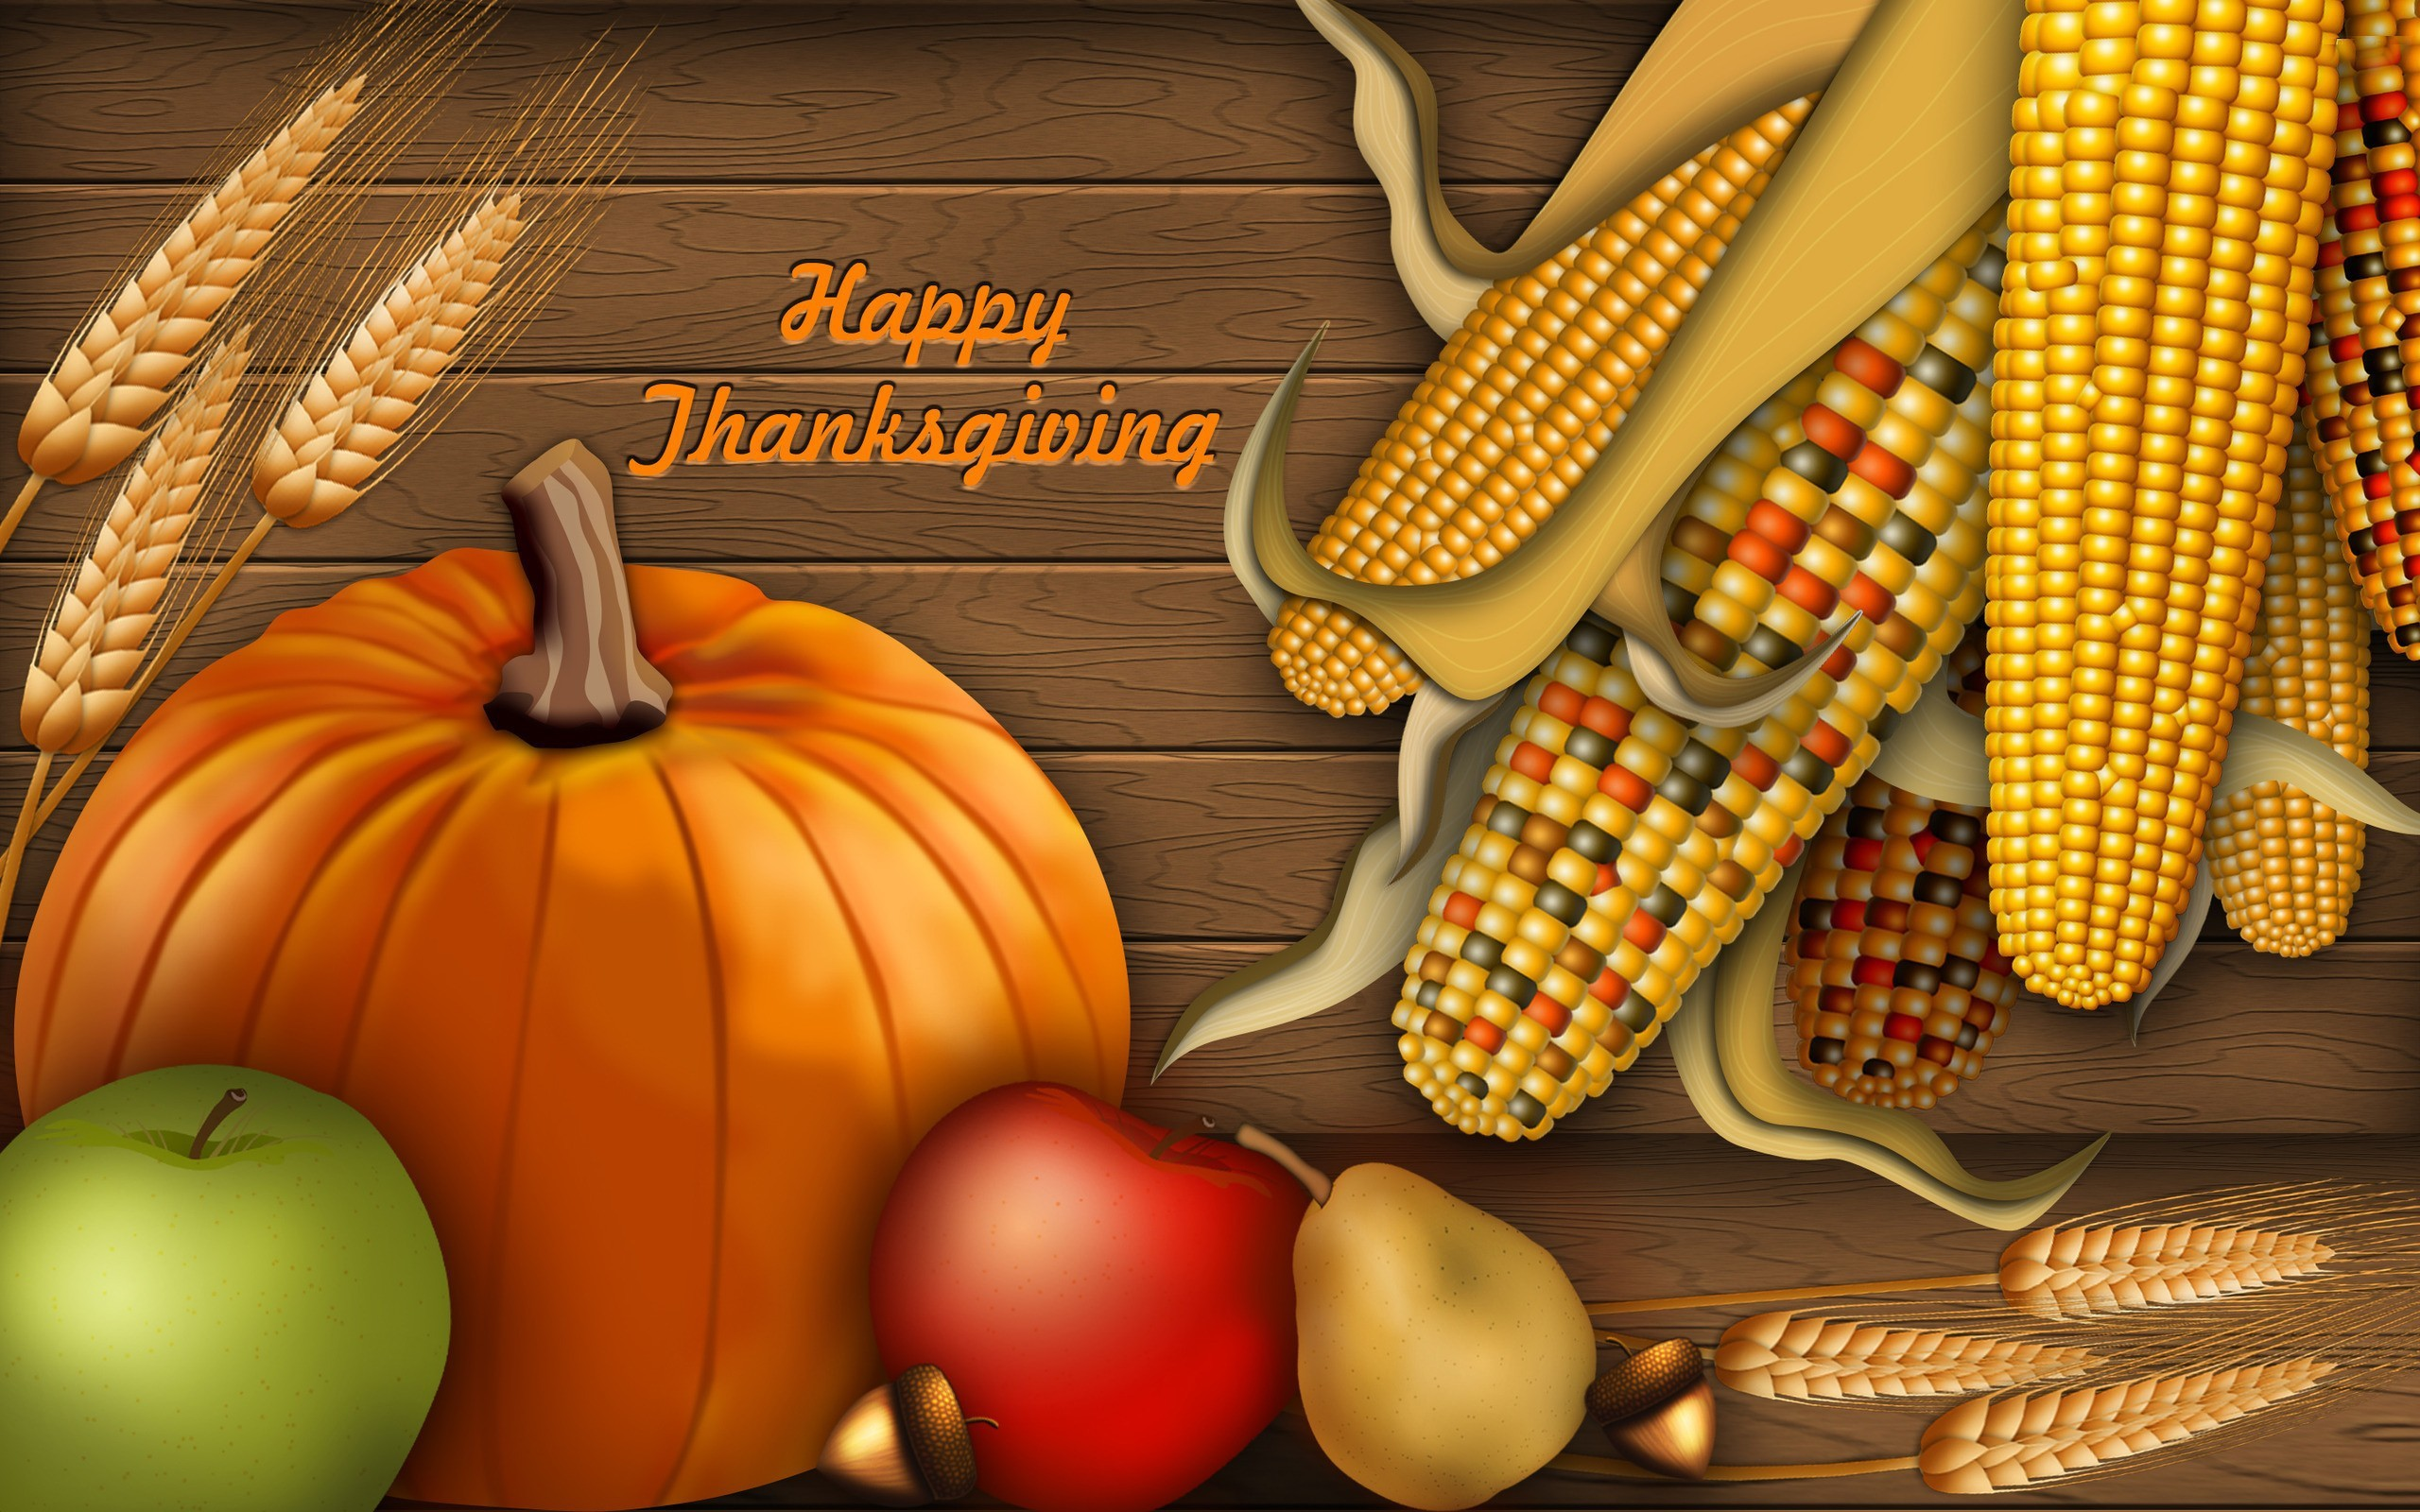 Thanksgiving Holiday HD Wallpapers Free Download.